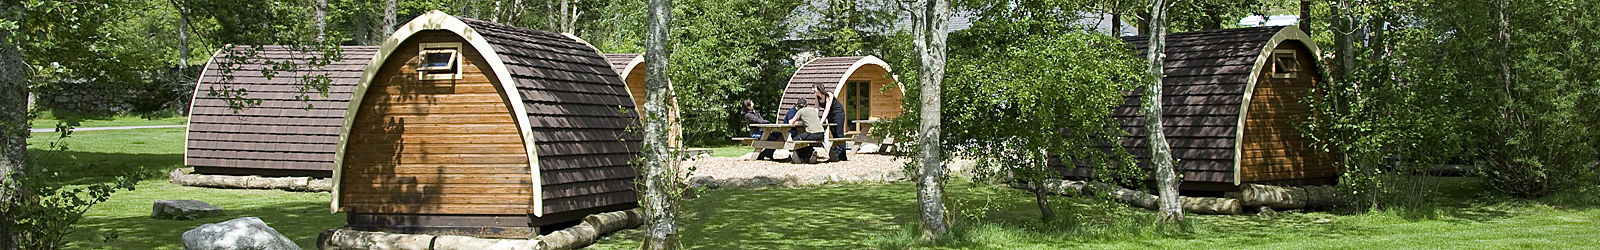 Camping Pods at Eskdale Club Site